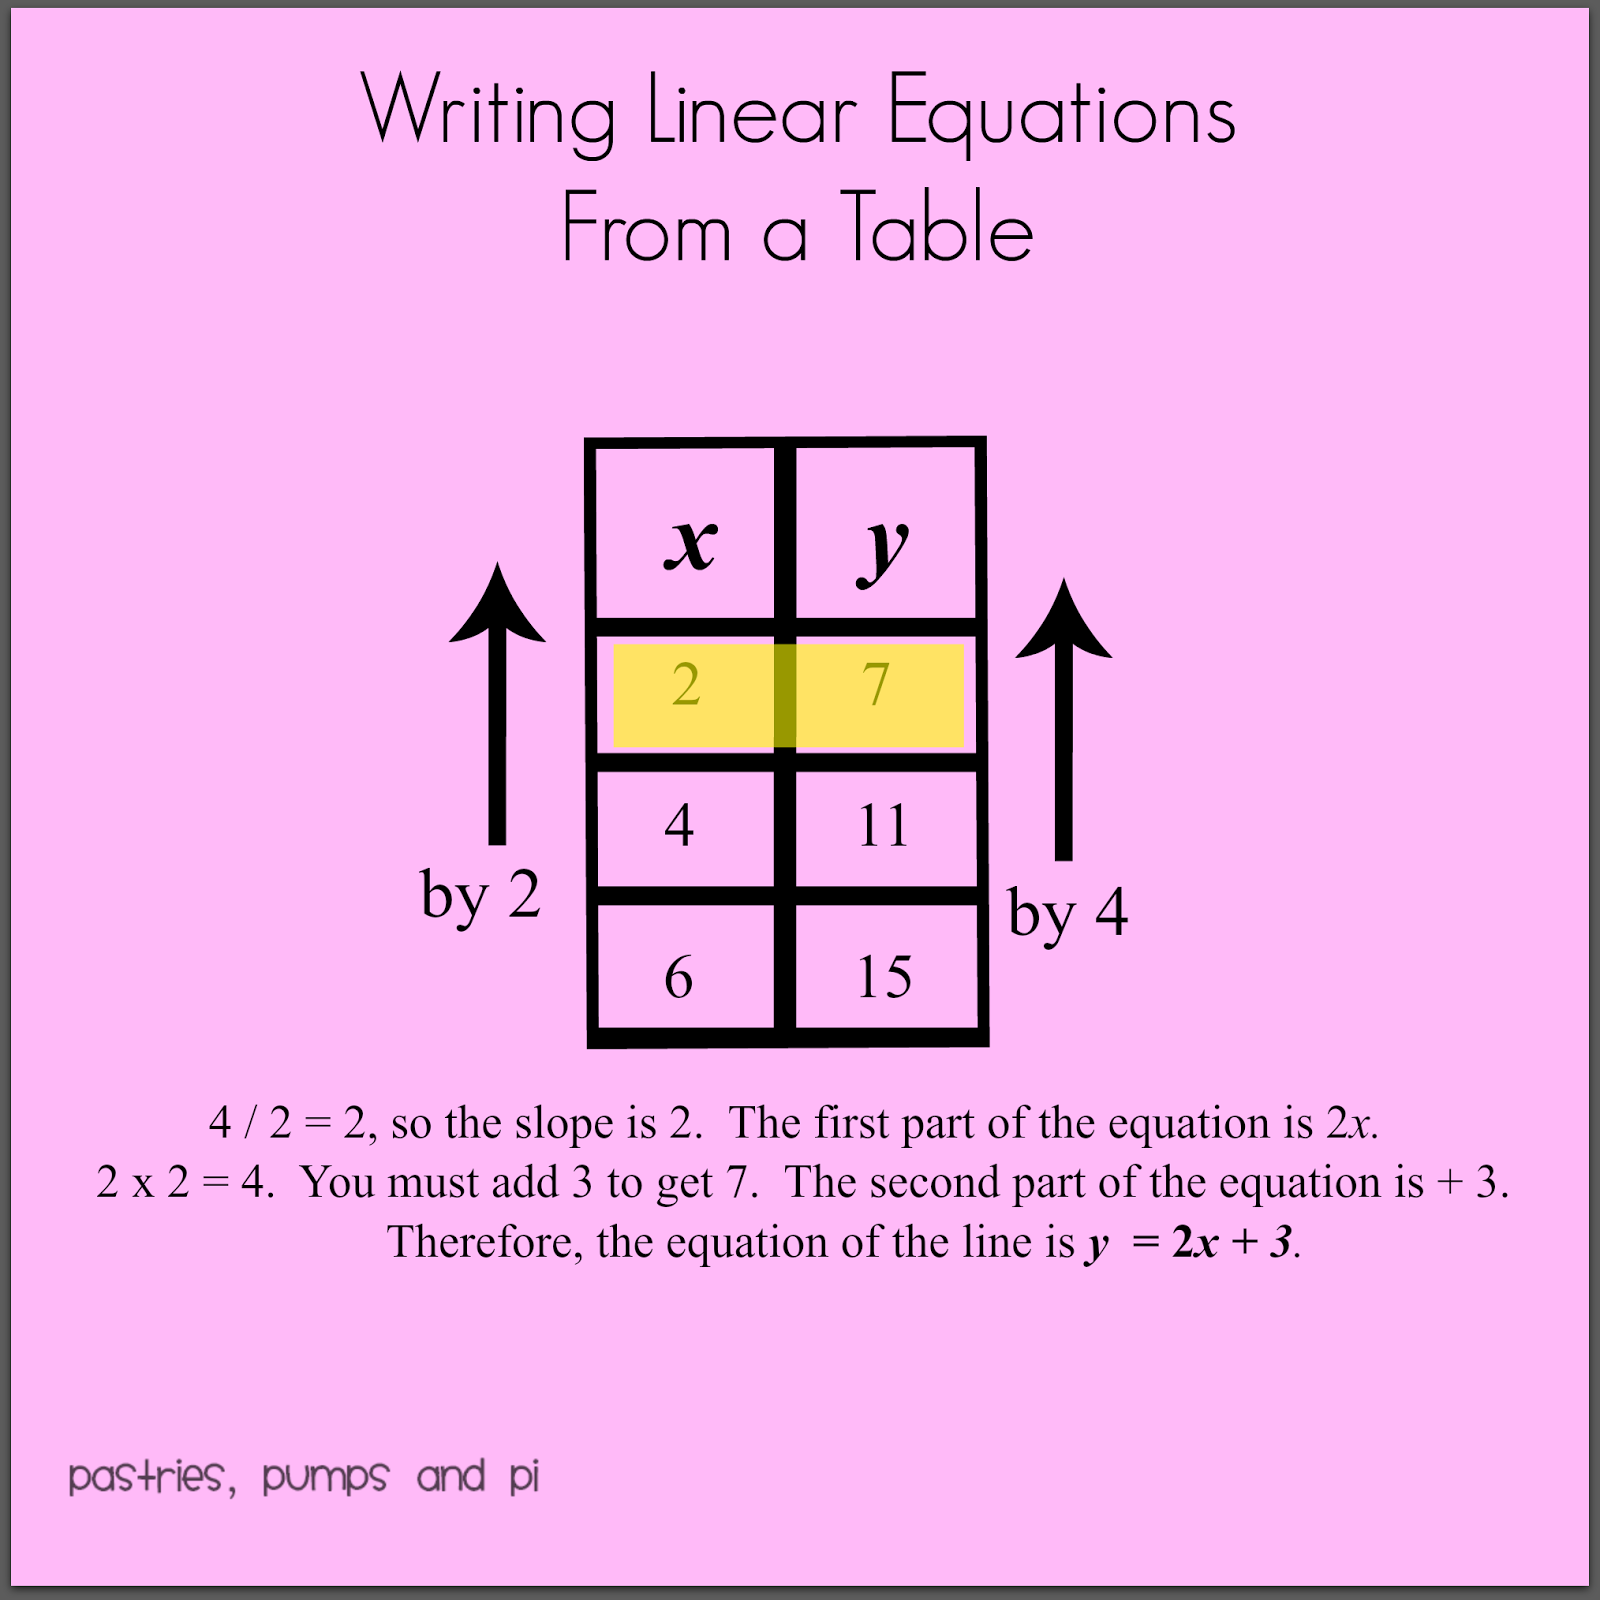 pastries, pumps and pi: math tip of the day: writing linear